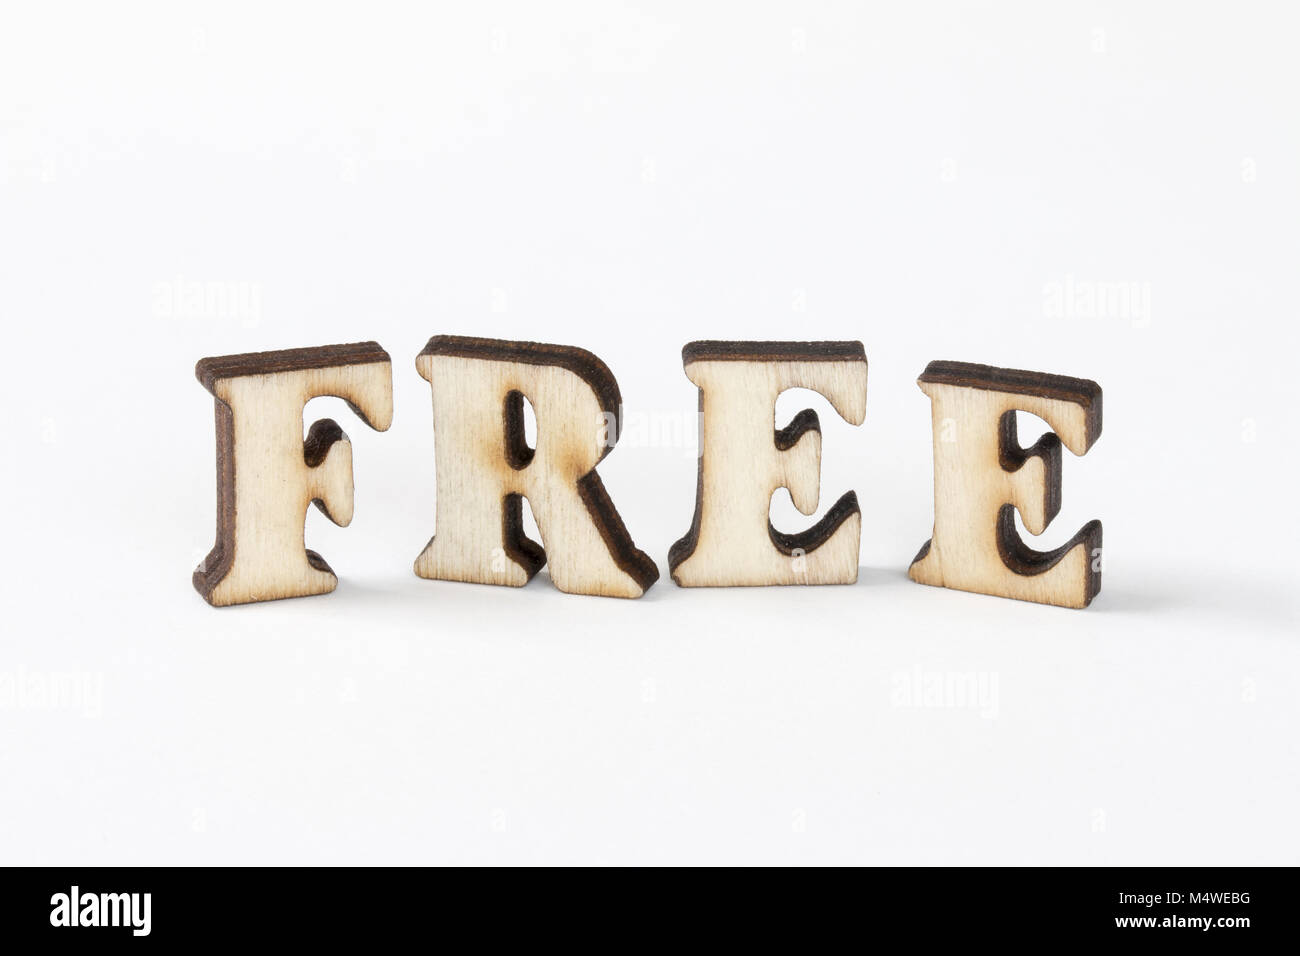 free wood letters free on white background stock photo 175122404